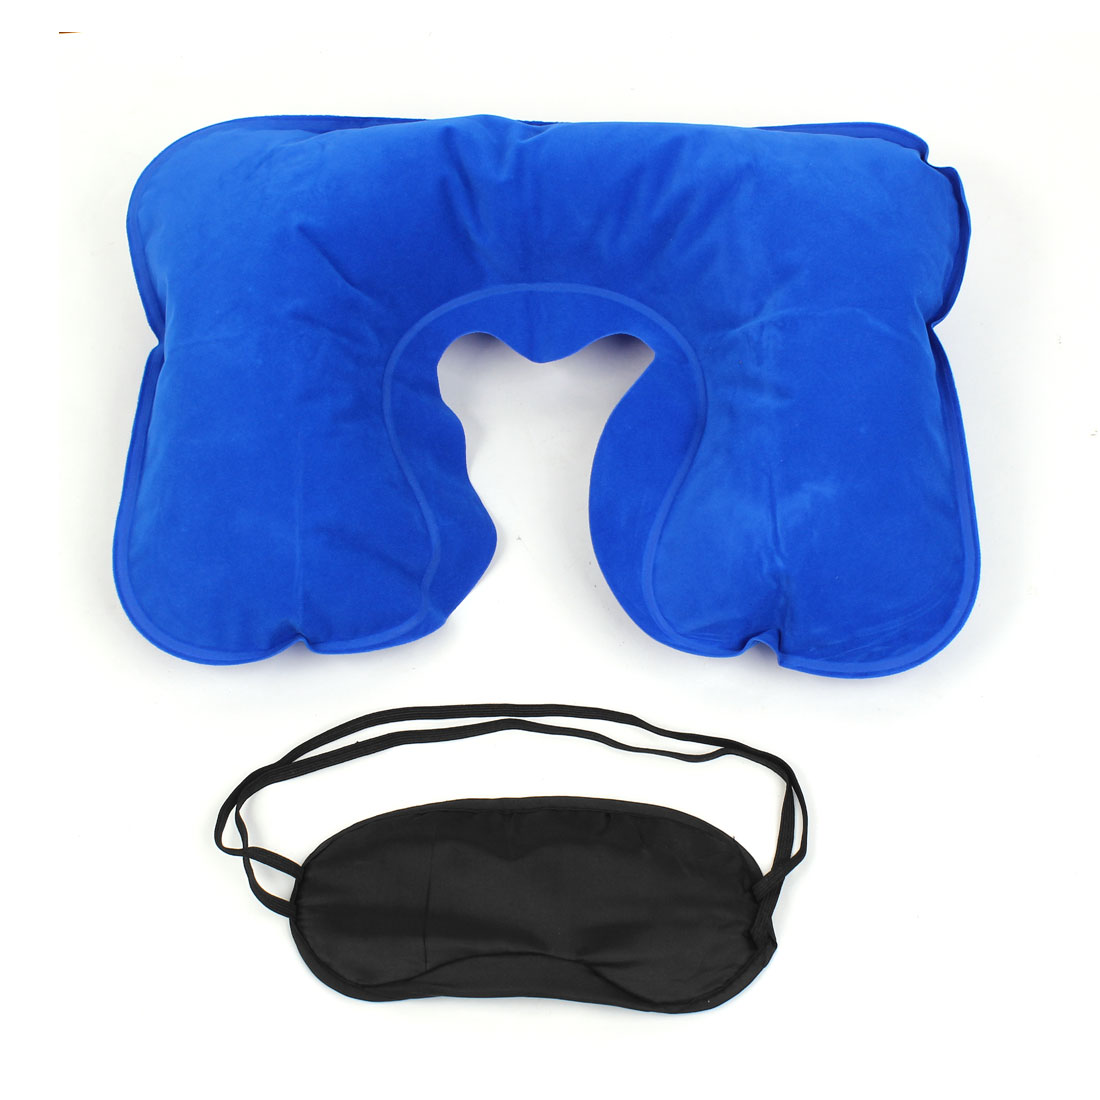 Unique Bargains Travel Home Rest Blue Inflating Air Pillow Eye Mask w Eyeplug 3 in 1 Set